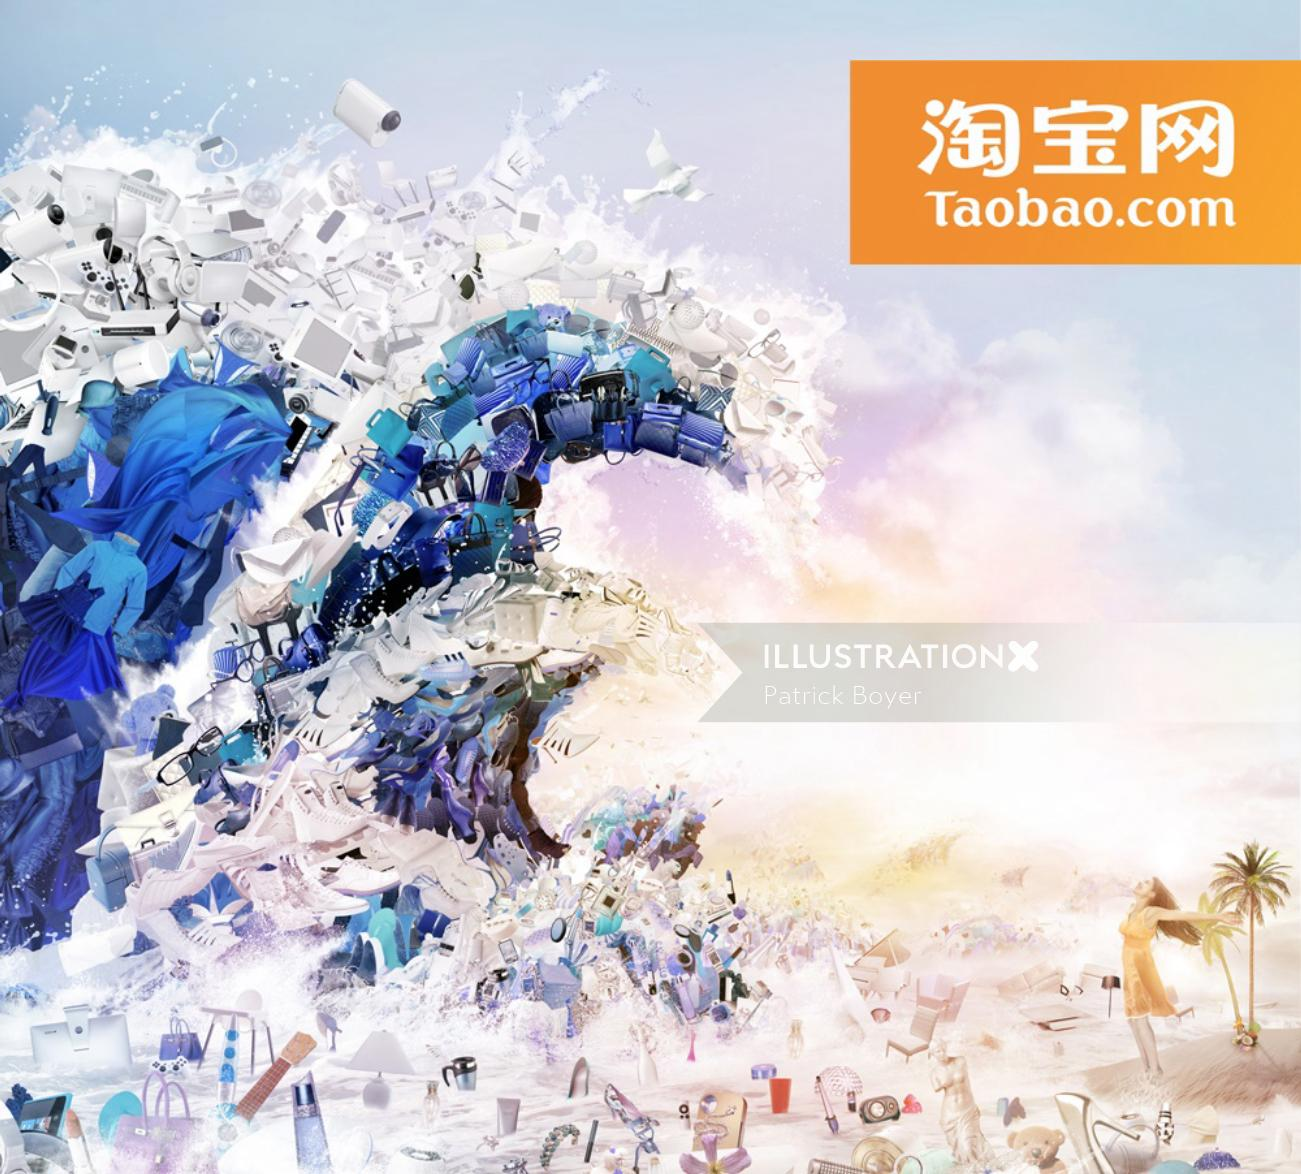 Taobao Ad illustration by Patrick Boyer